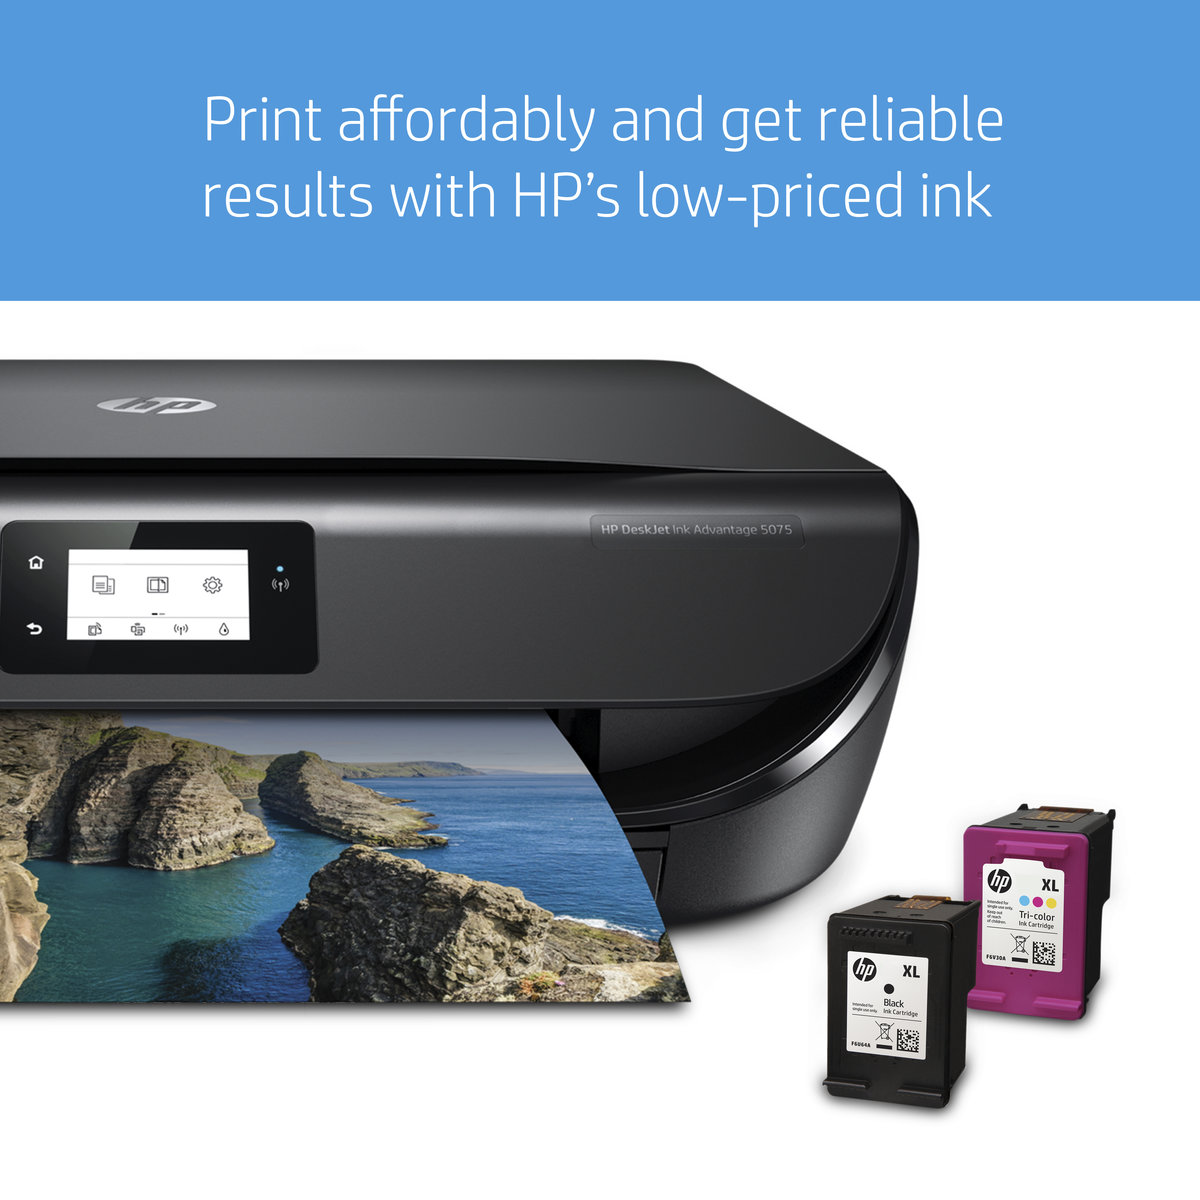 HP Deskjet Ink Advantage 5075 AiO